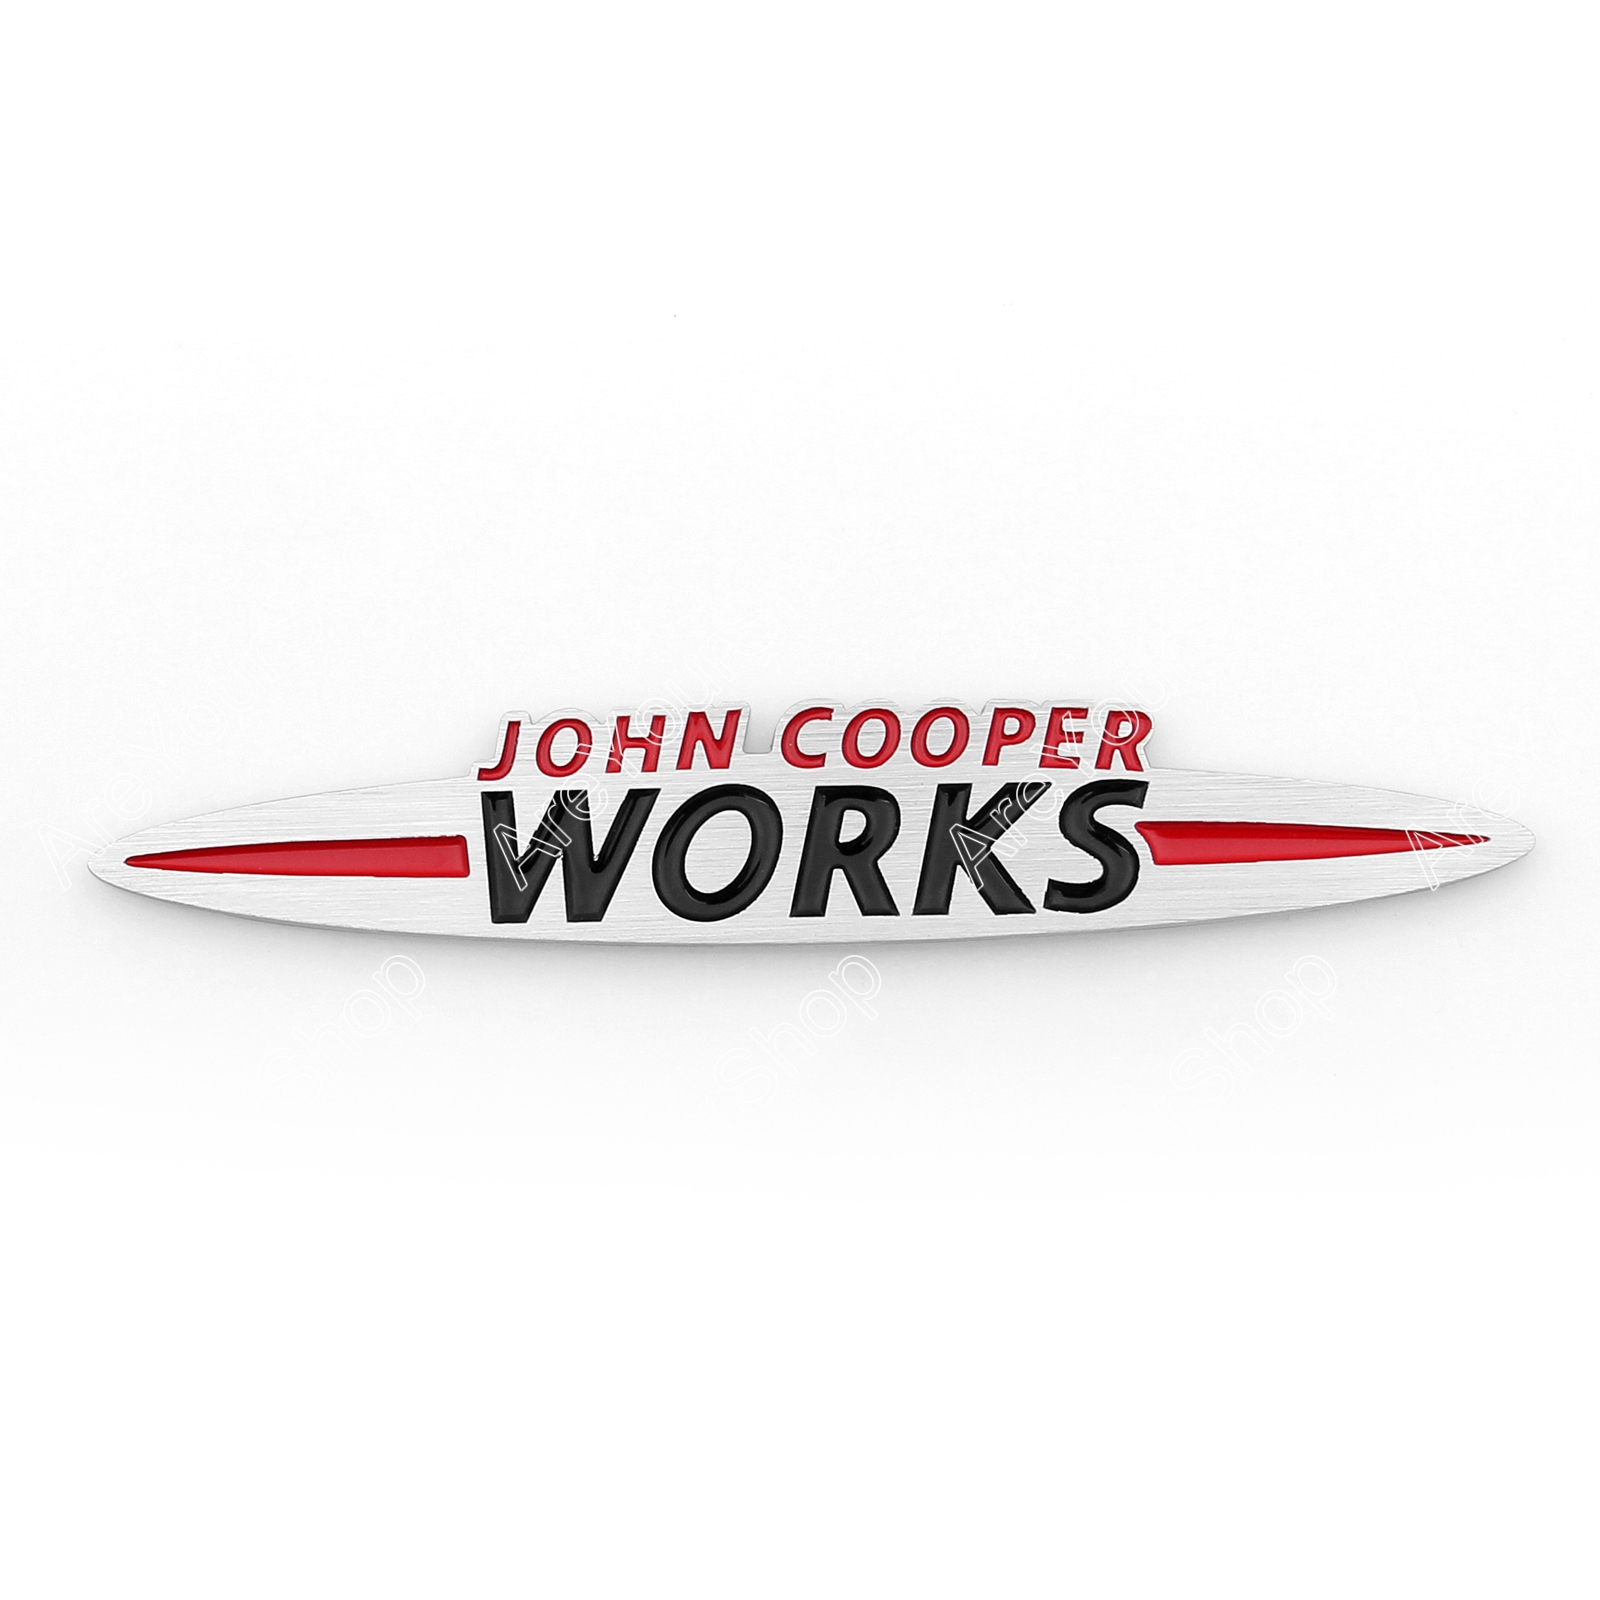 3D-Car-Aluminum-Emblem-Badge-Sticker-Decal-John-Cooper-Works